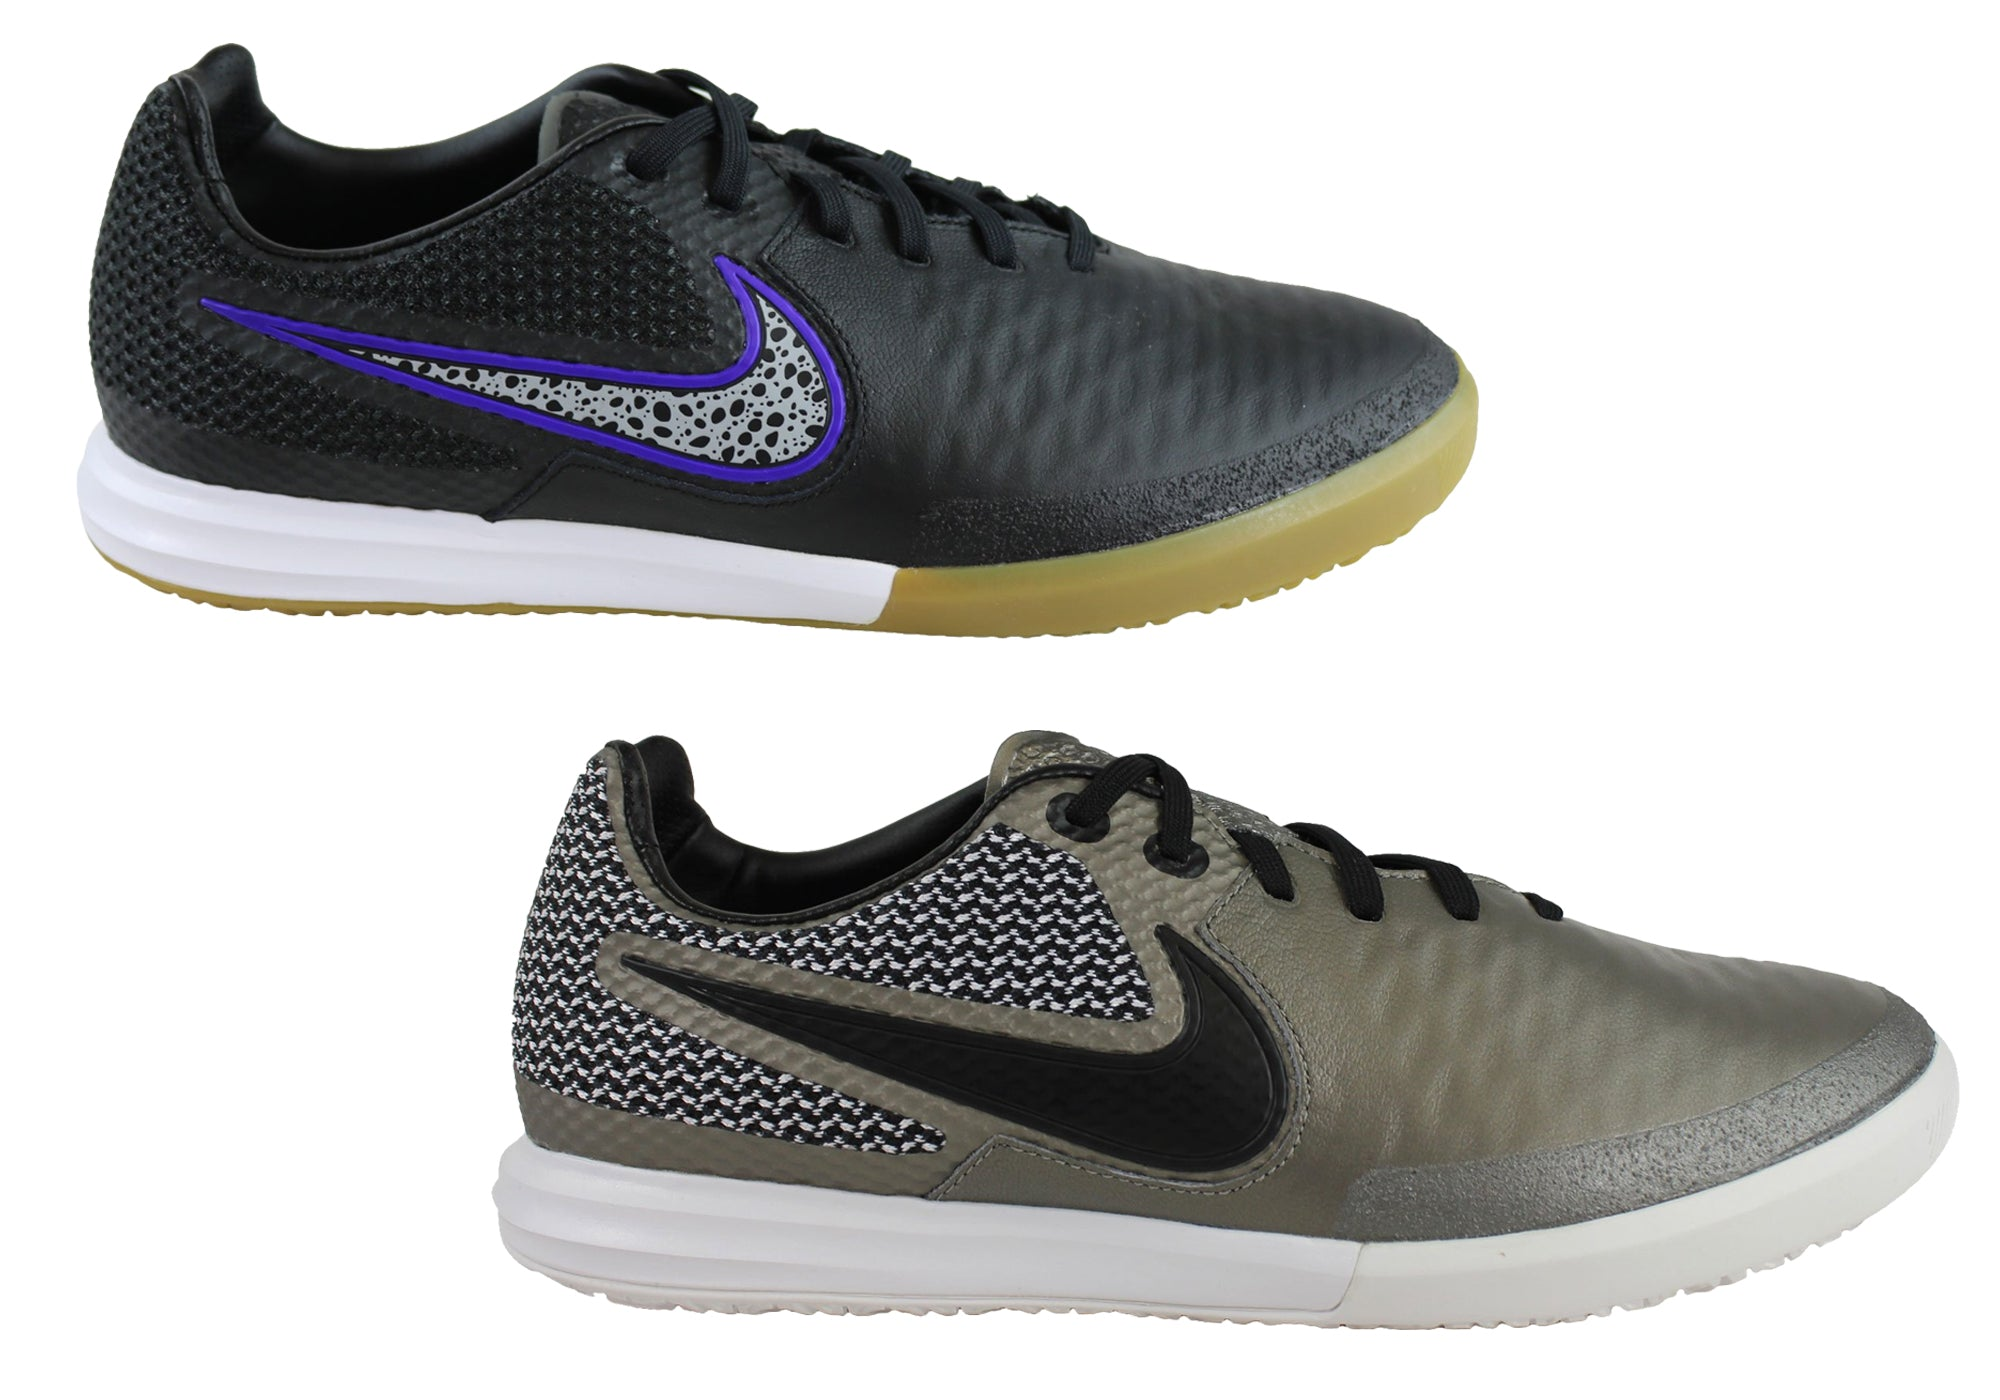 Details about NEW NIKE MAGISTAX FINALE IC MENS INDOOR FOOTBALL SOCCER FUTSAL  SHOES a5d238db0